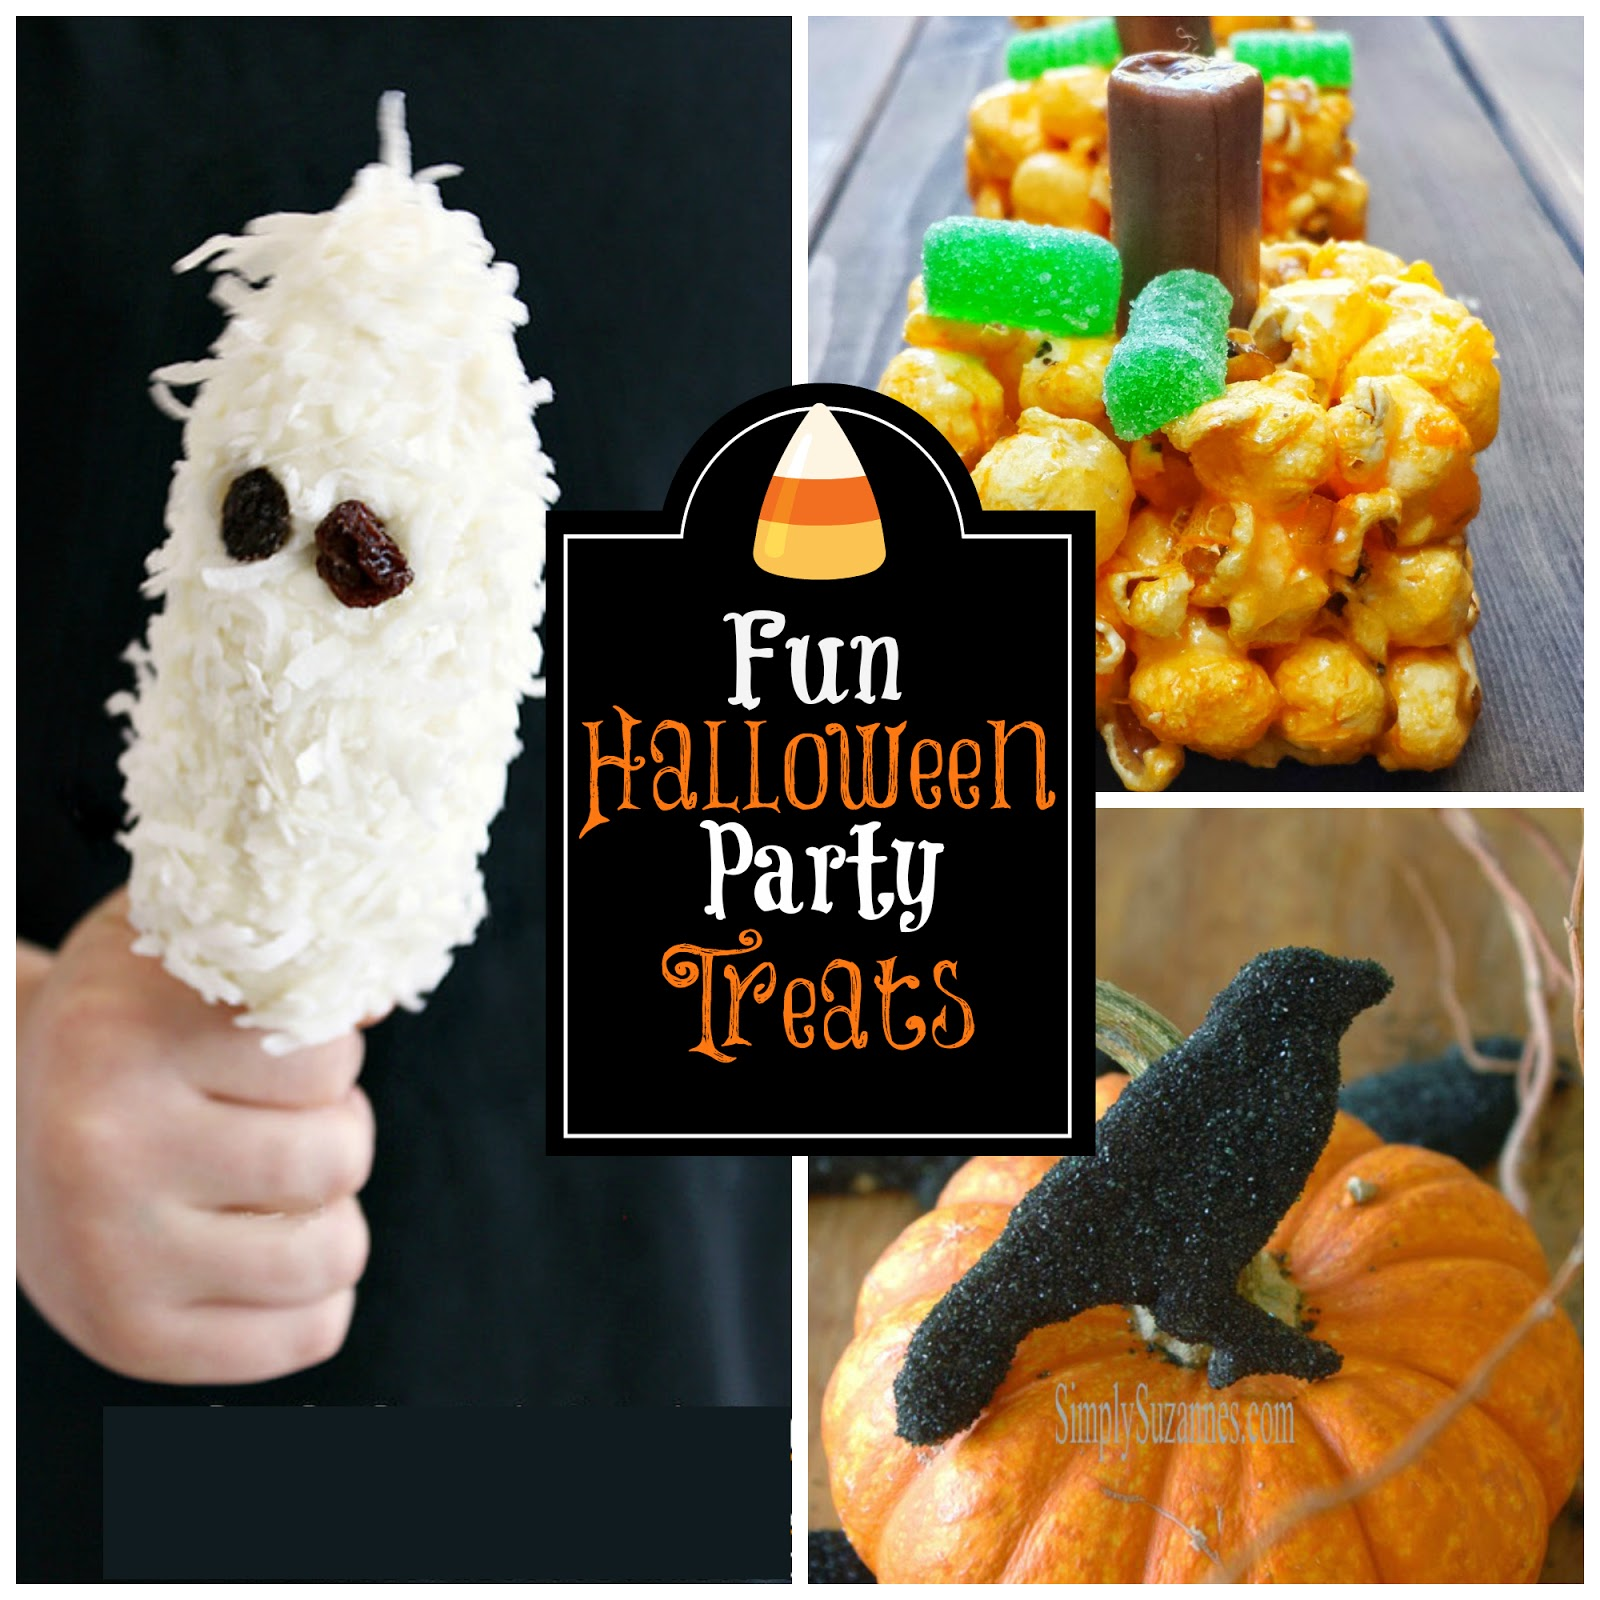 Posed Perfection: Fun Halloween Party Treats